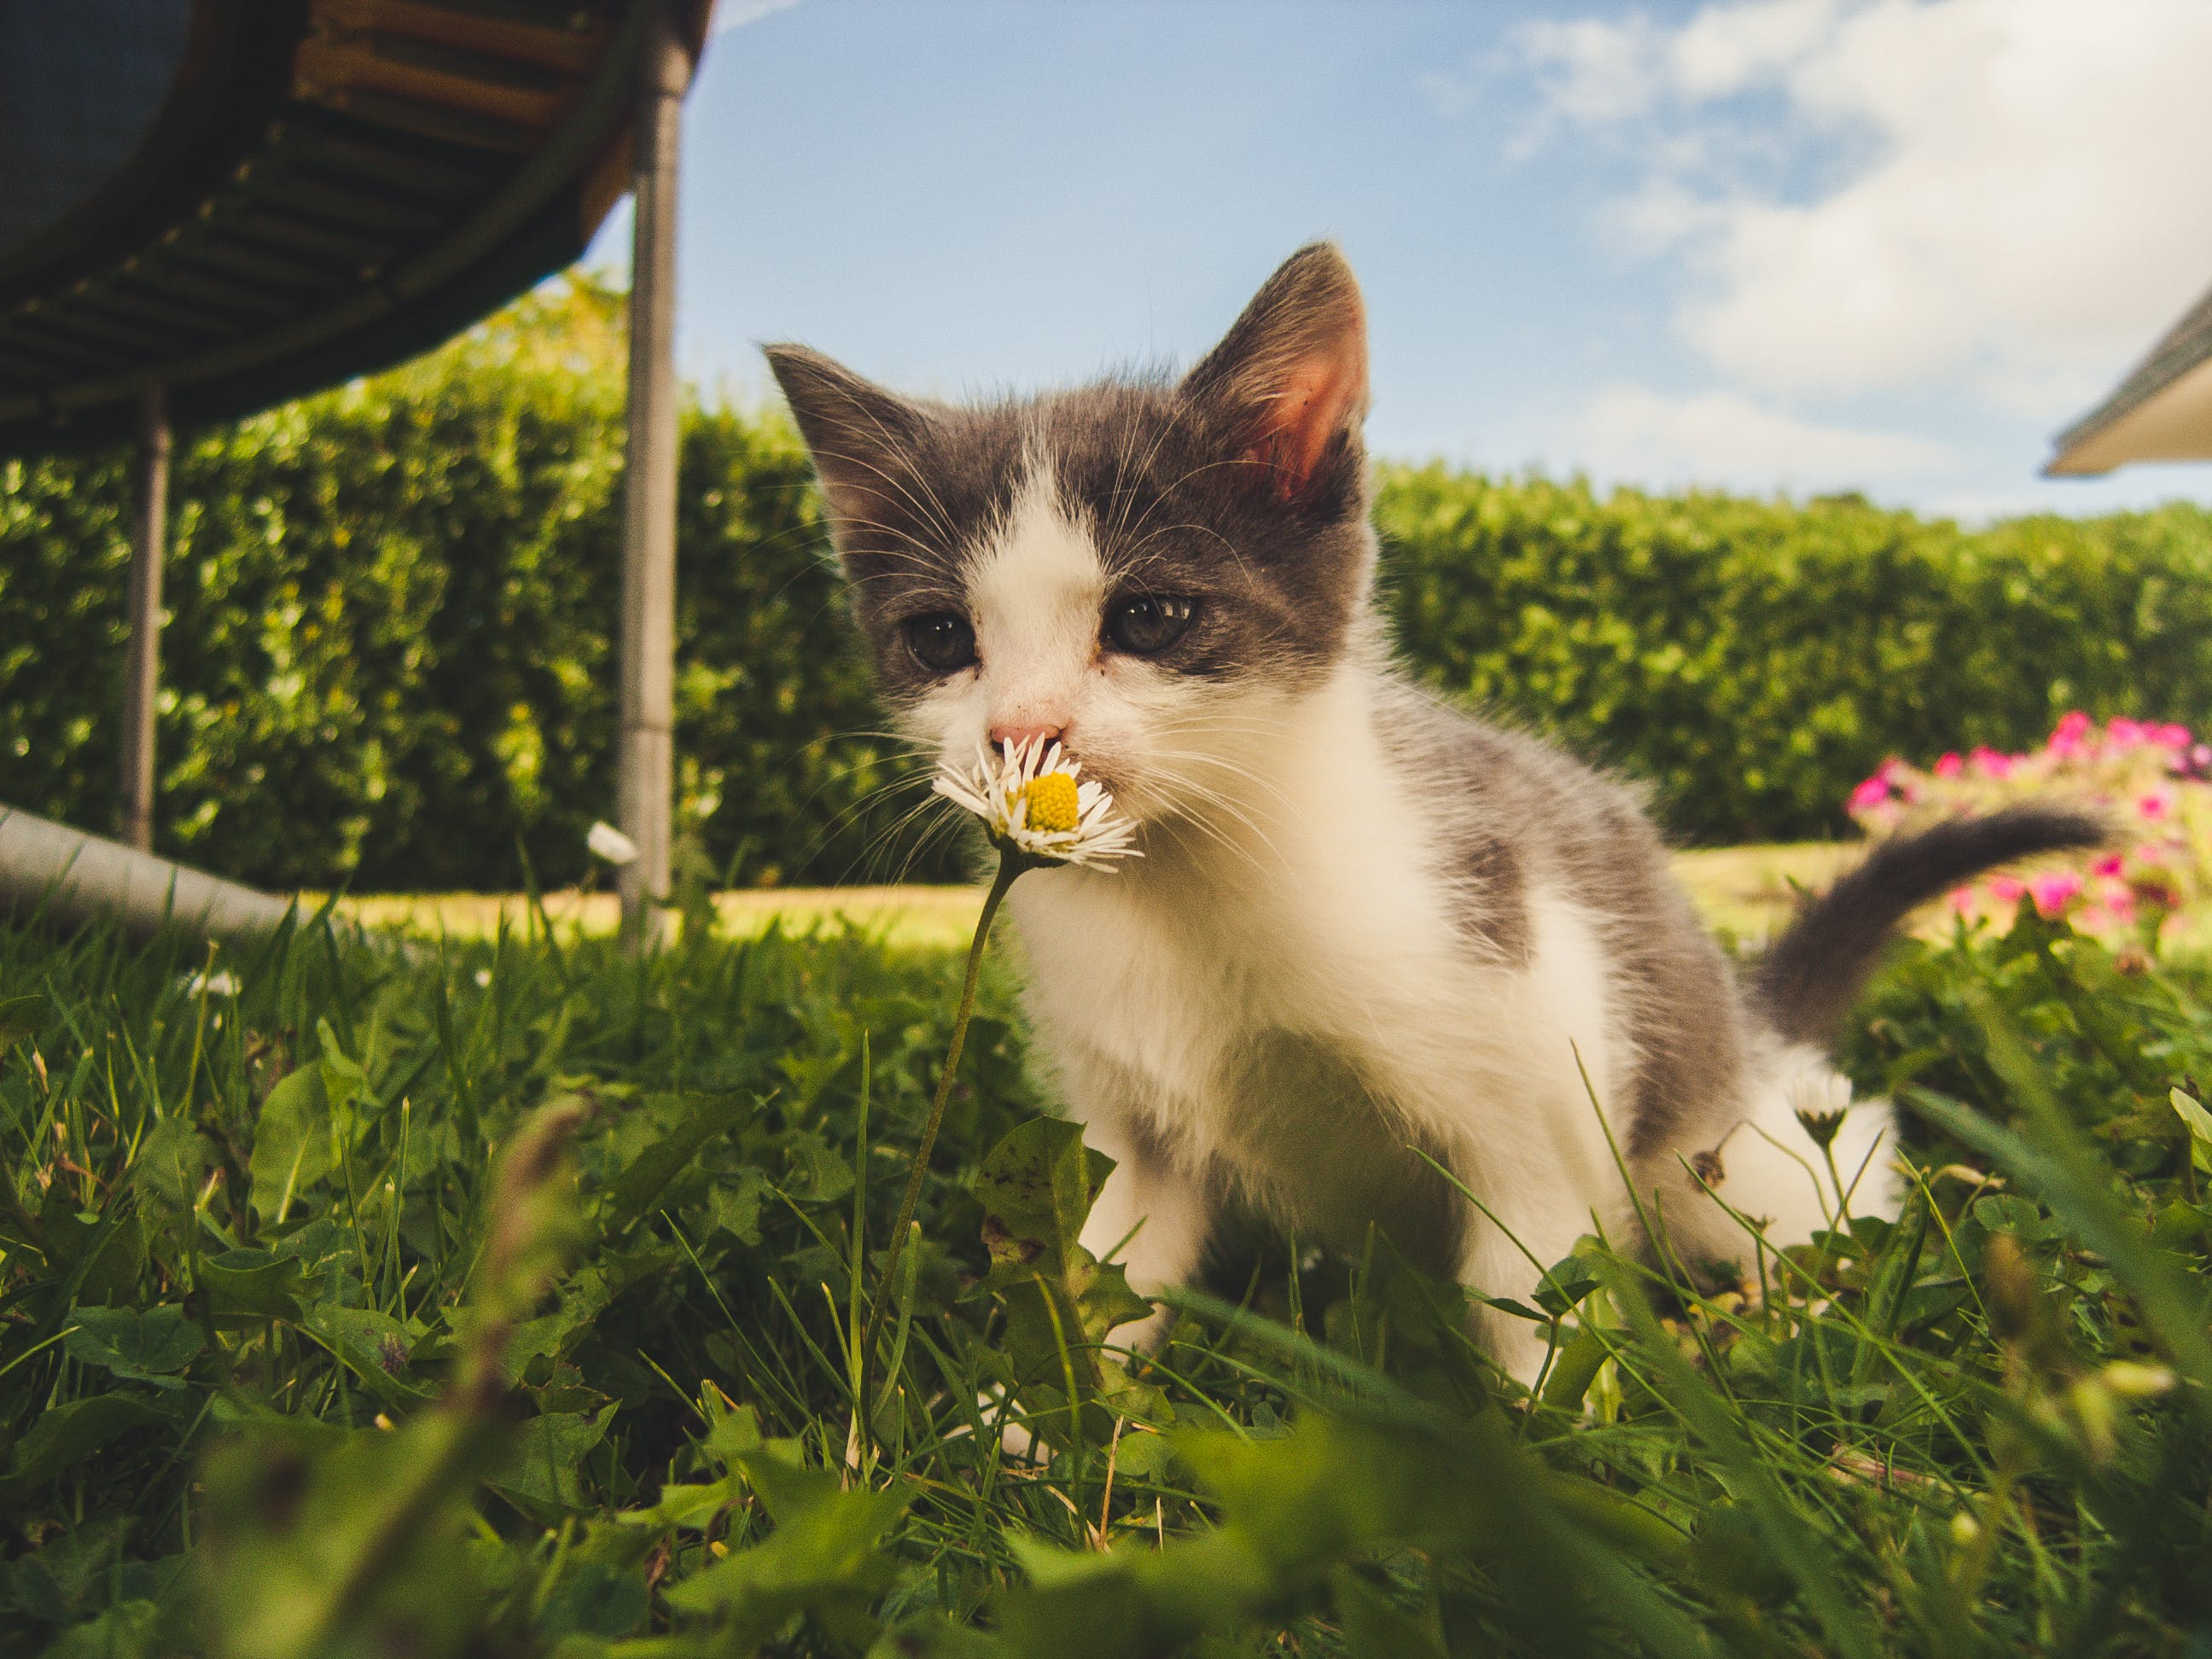 White and Grey Kitten Smelling White Daisy Flower